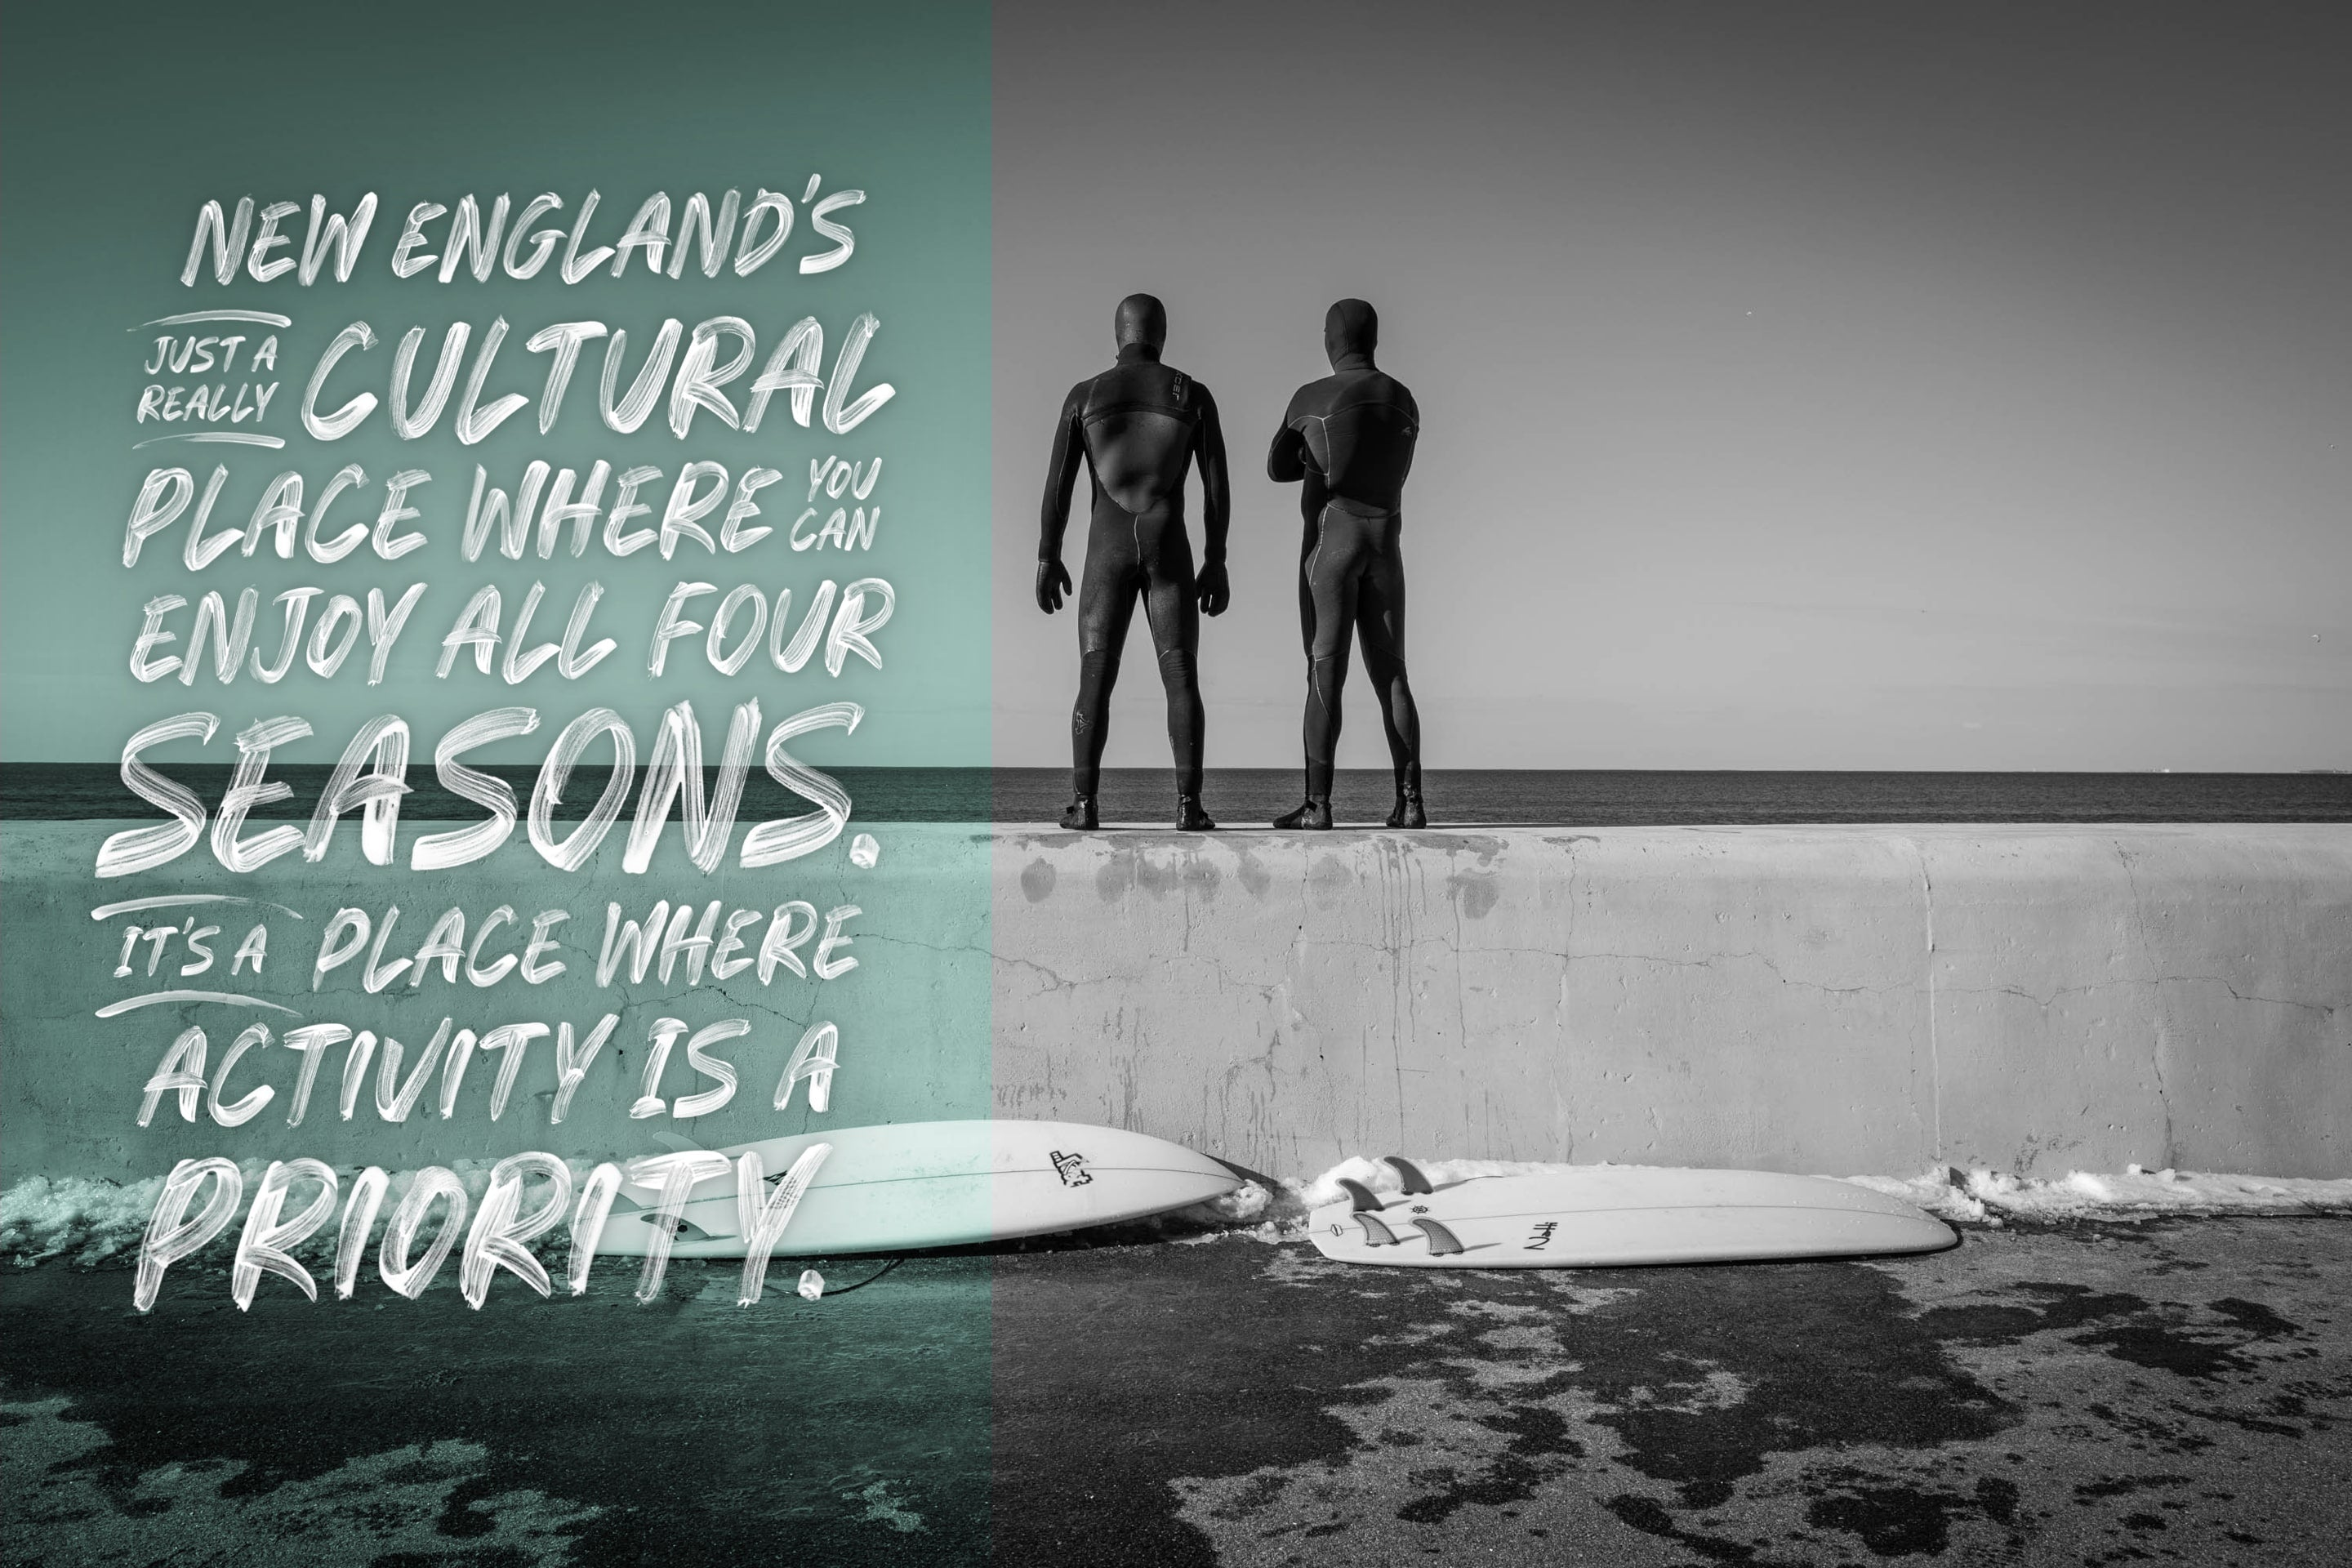 Two men in wetsuits standing on wall after surfing